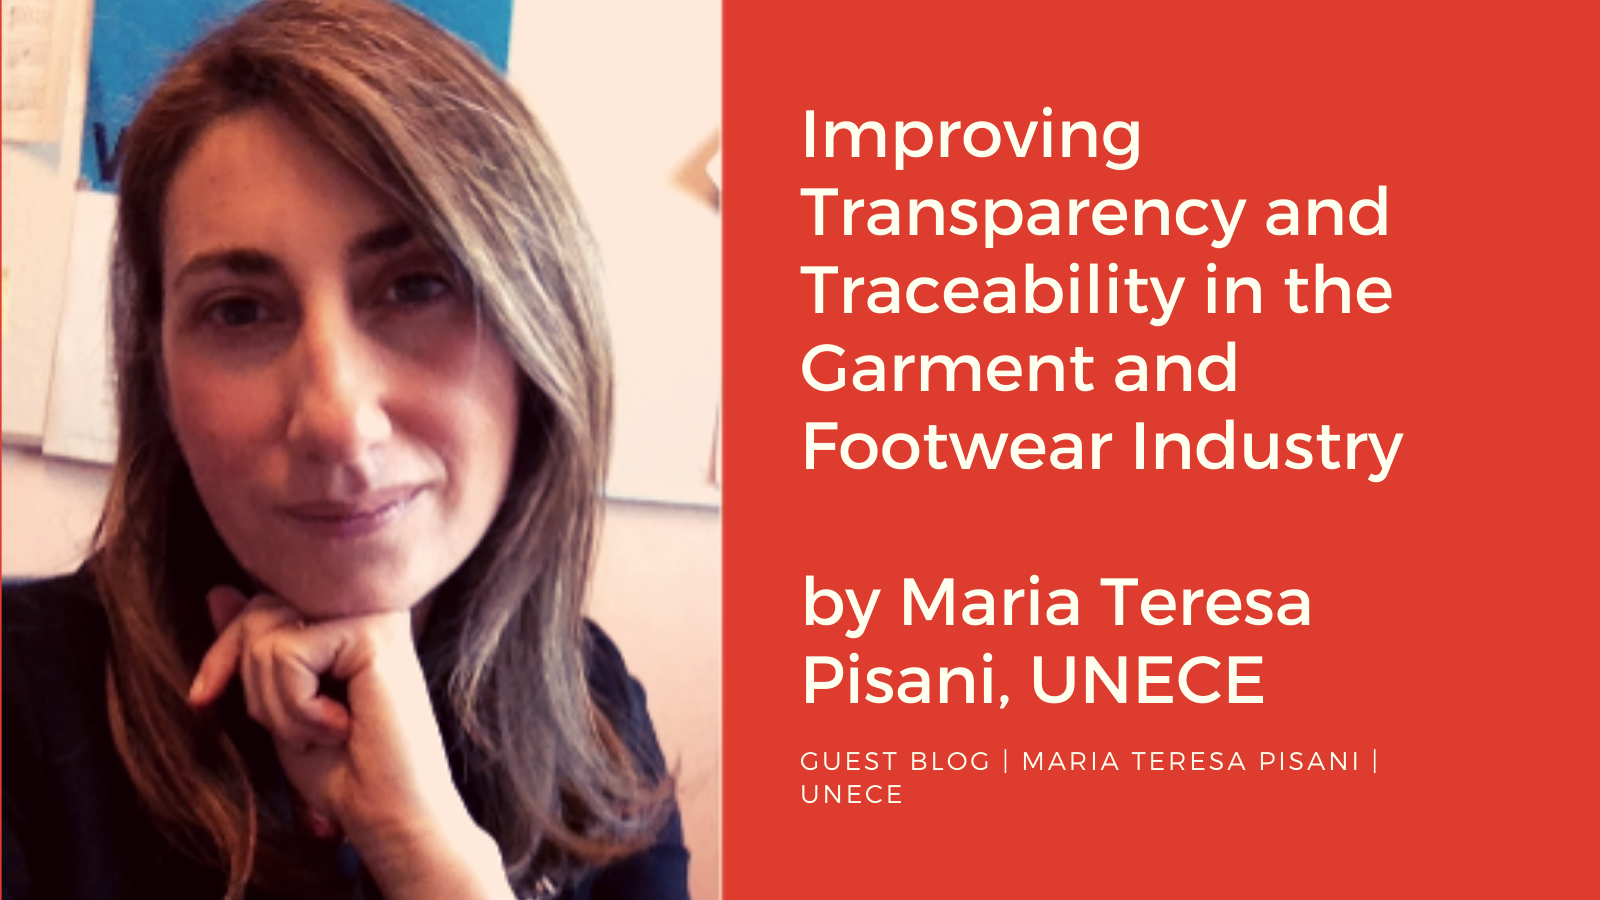 Improving Transparency and Traceability in the Garment & Footwear Industry